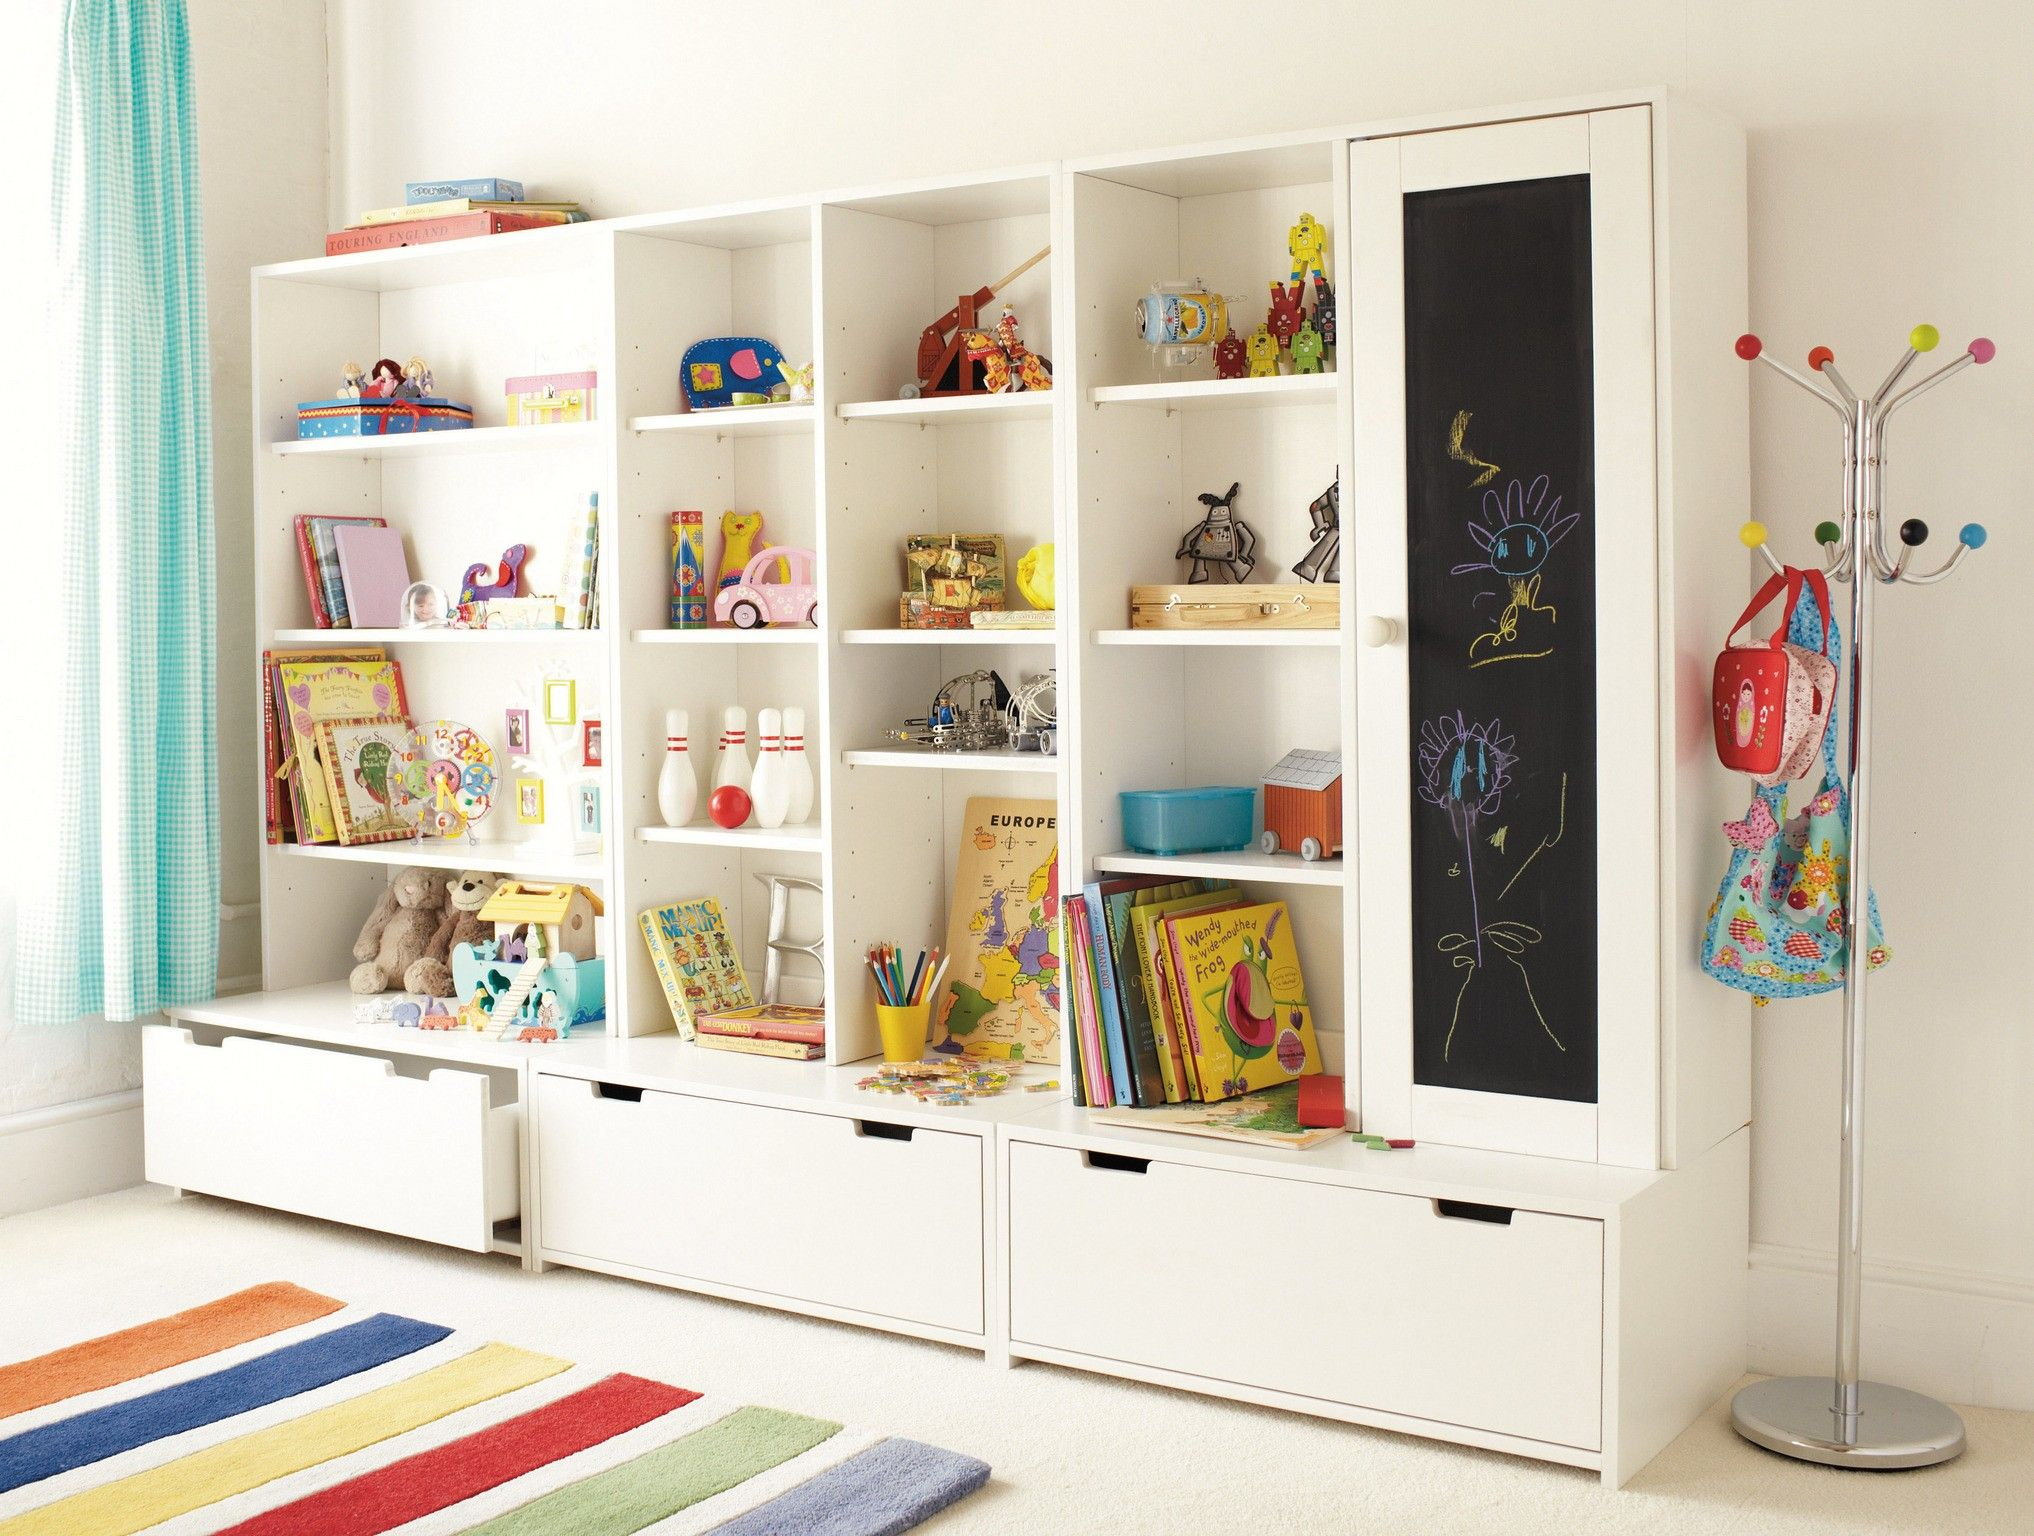 Appealing Playroom Storage Ideas Design With Large White